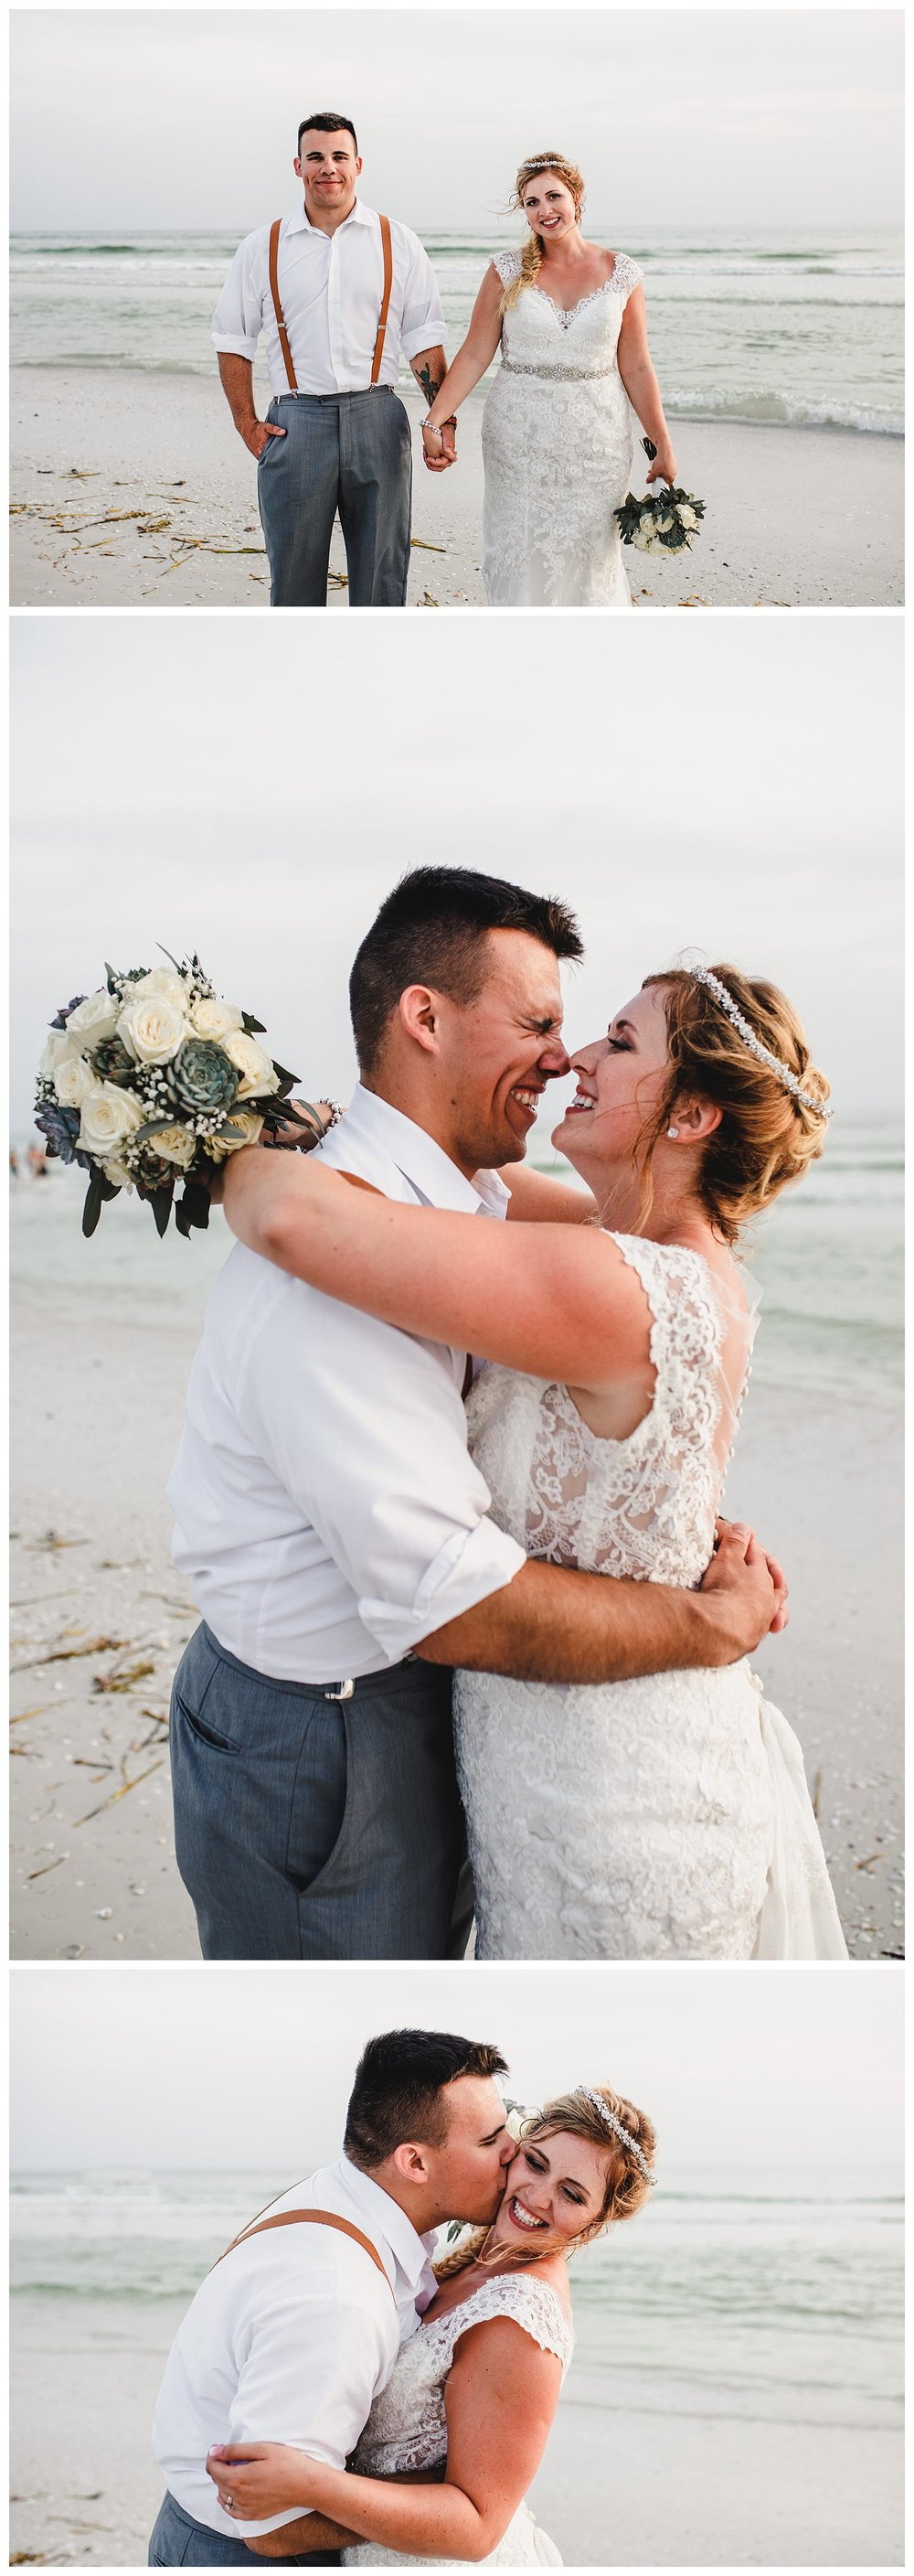 Kelsey_Diane_Photography_Destination_Wedding_Sarasota_Florida_Beach_Wedding_Alex_Austin_0679.jpg